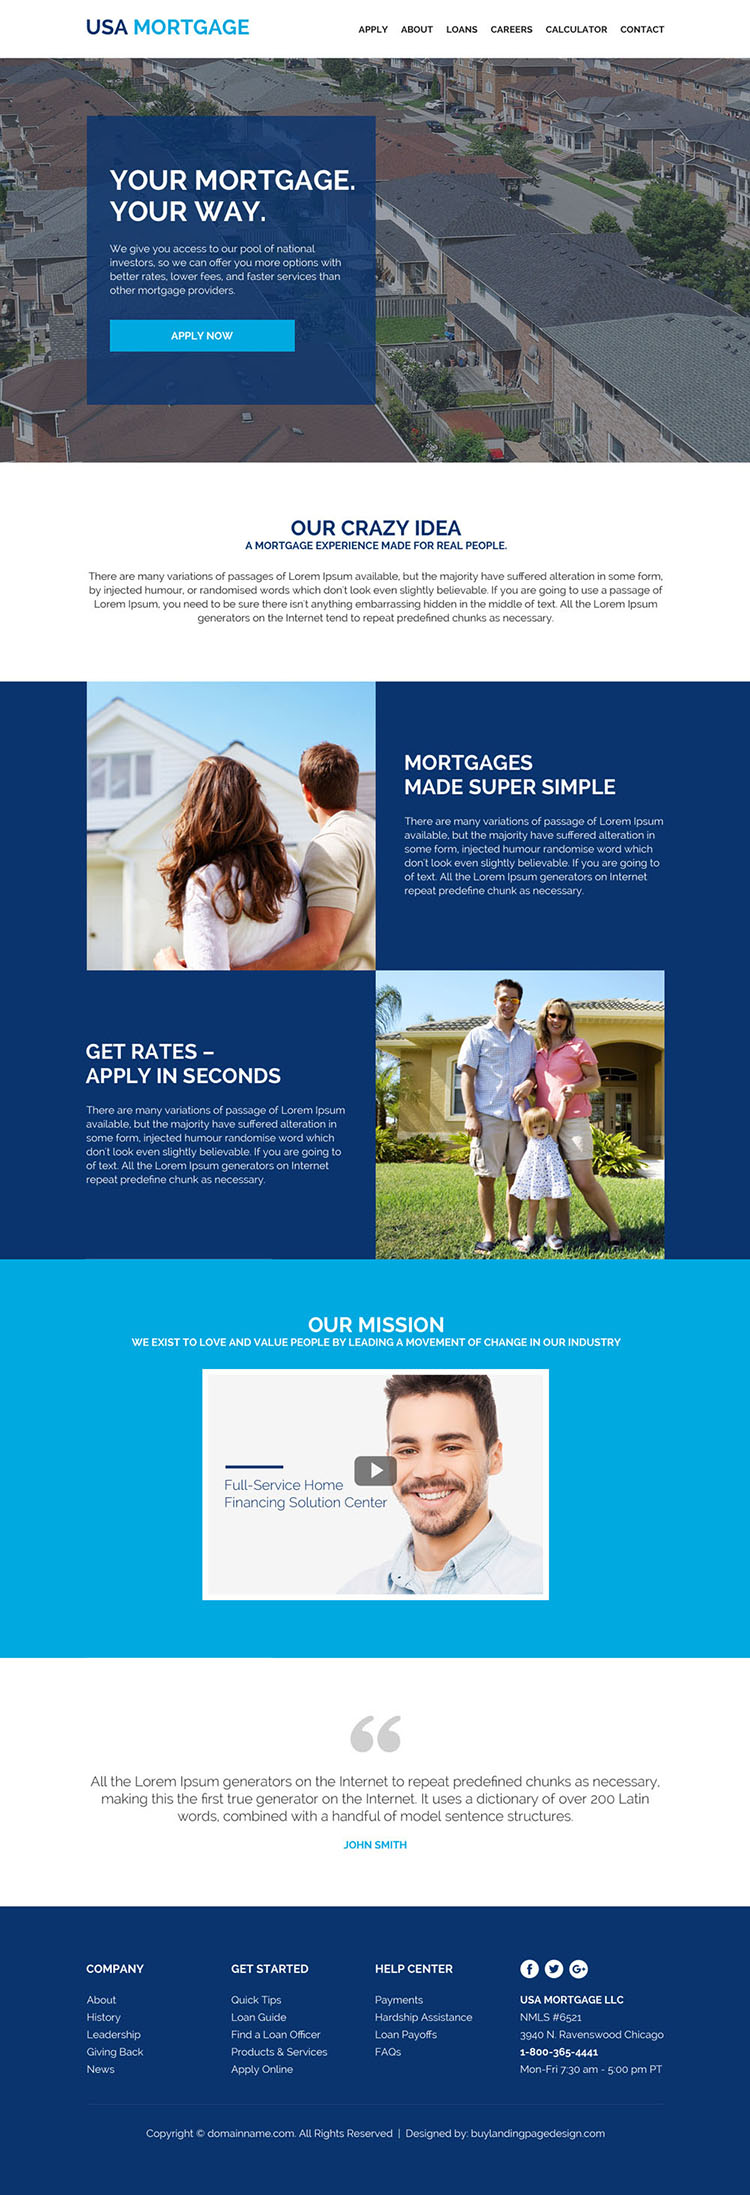 mortgage refinance company website design